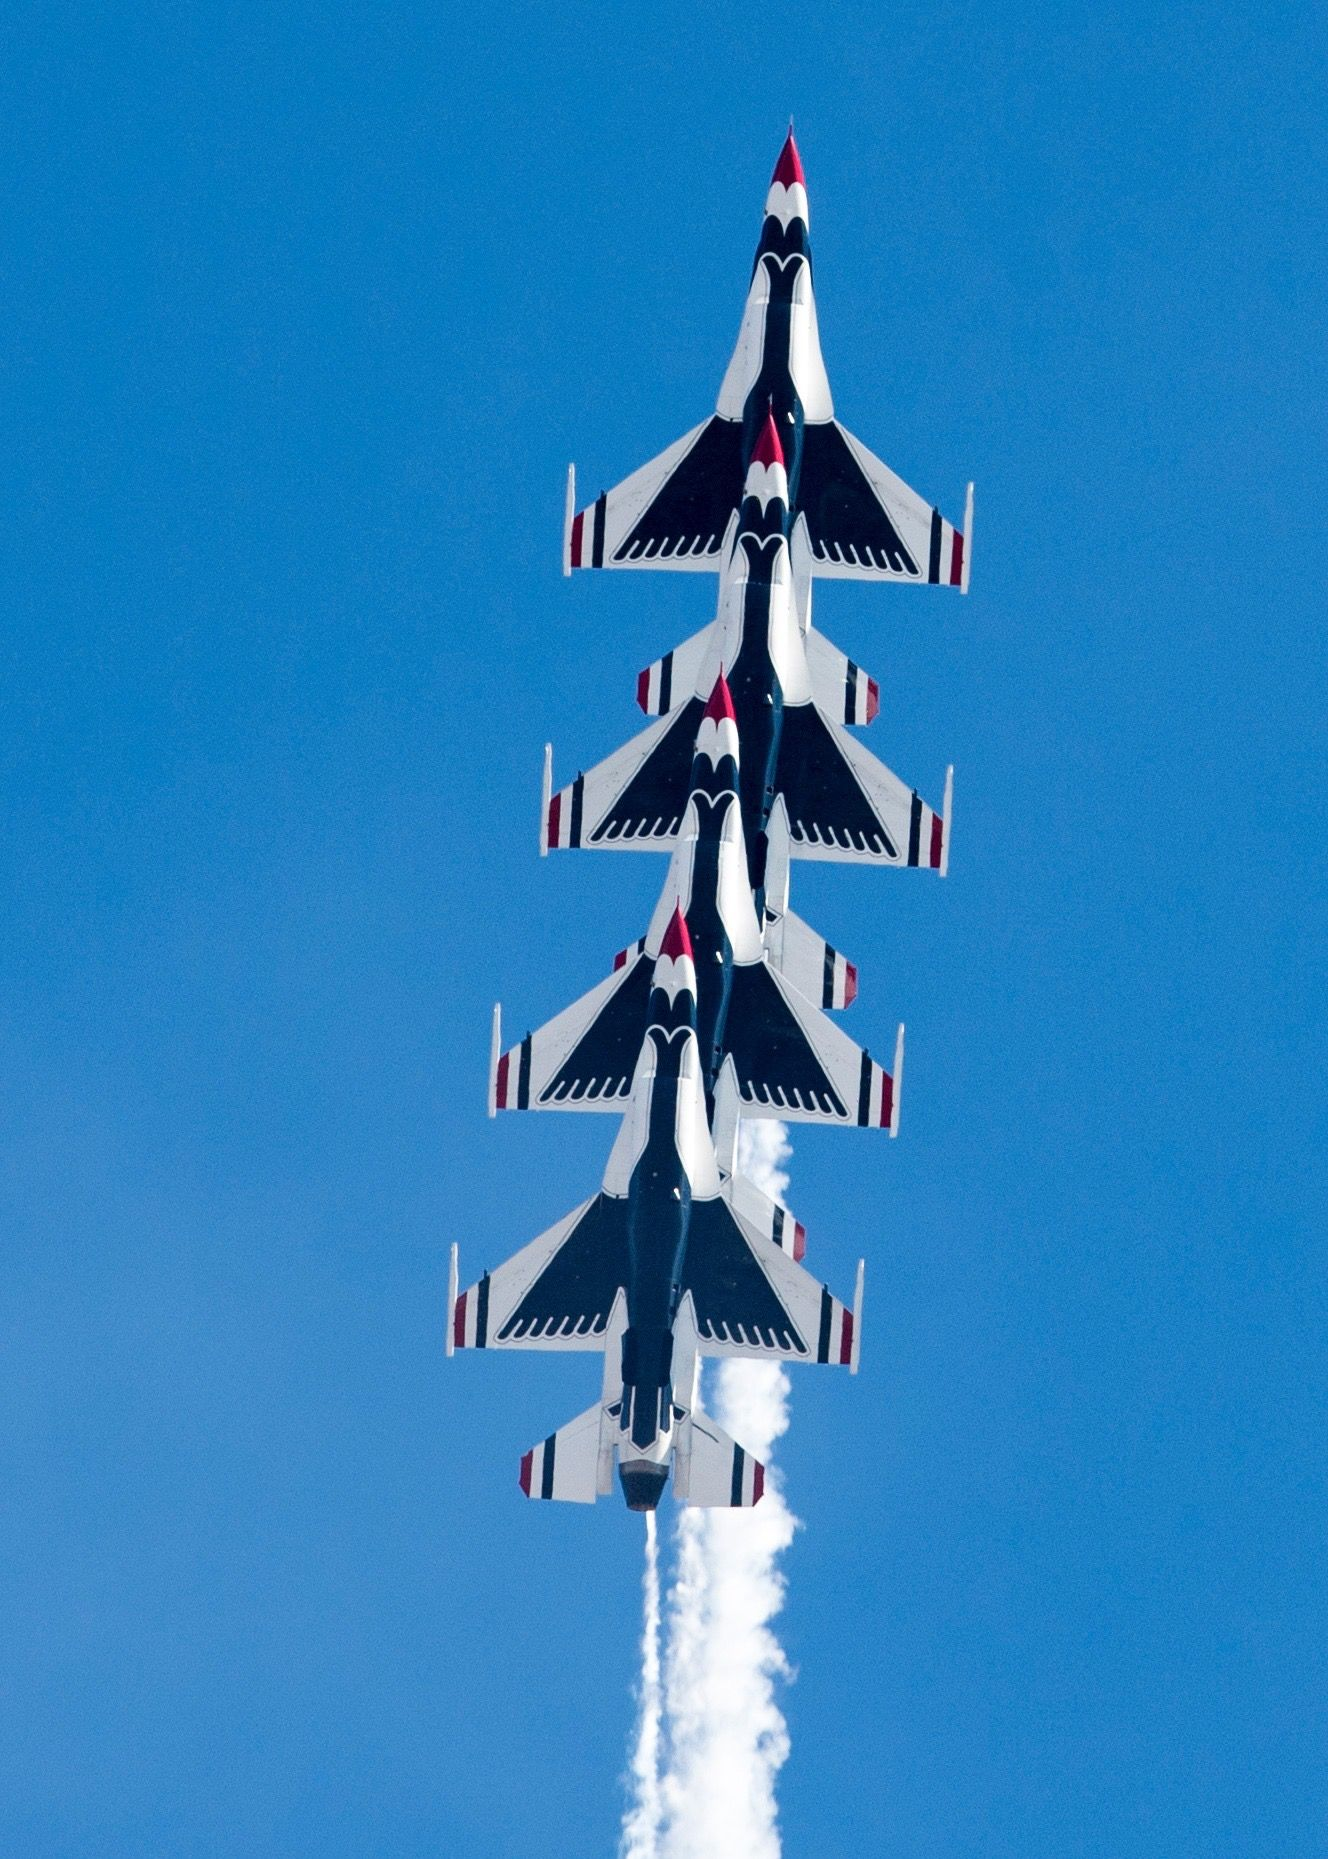 Thunderbirds (With images) Usaf thunderbirds, Fighter